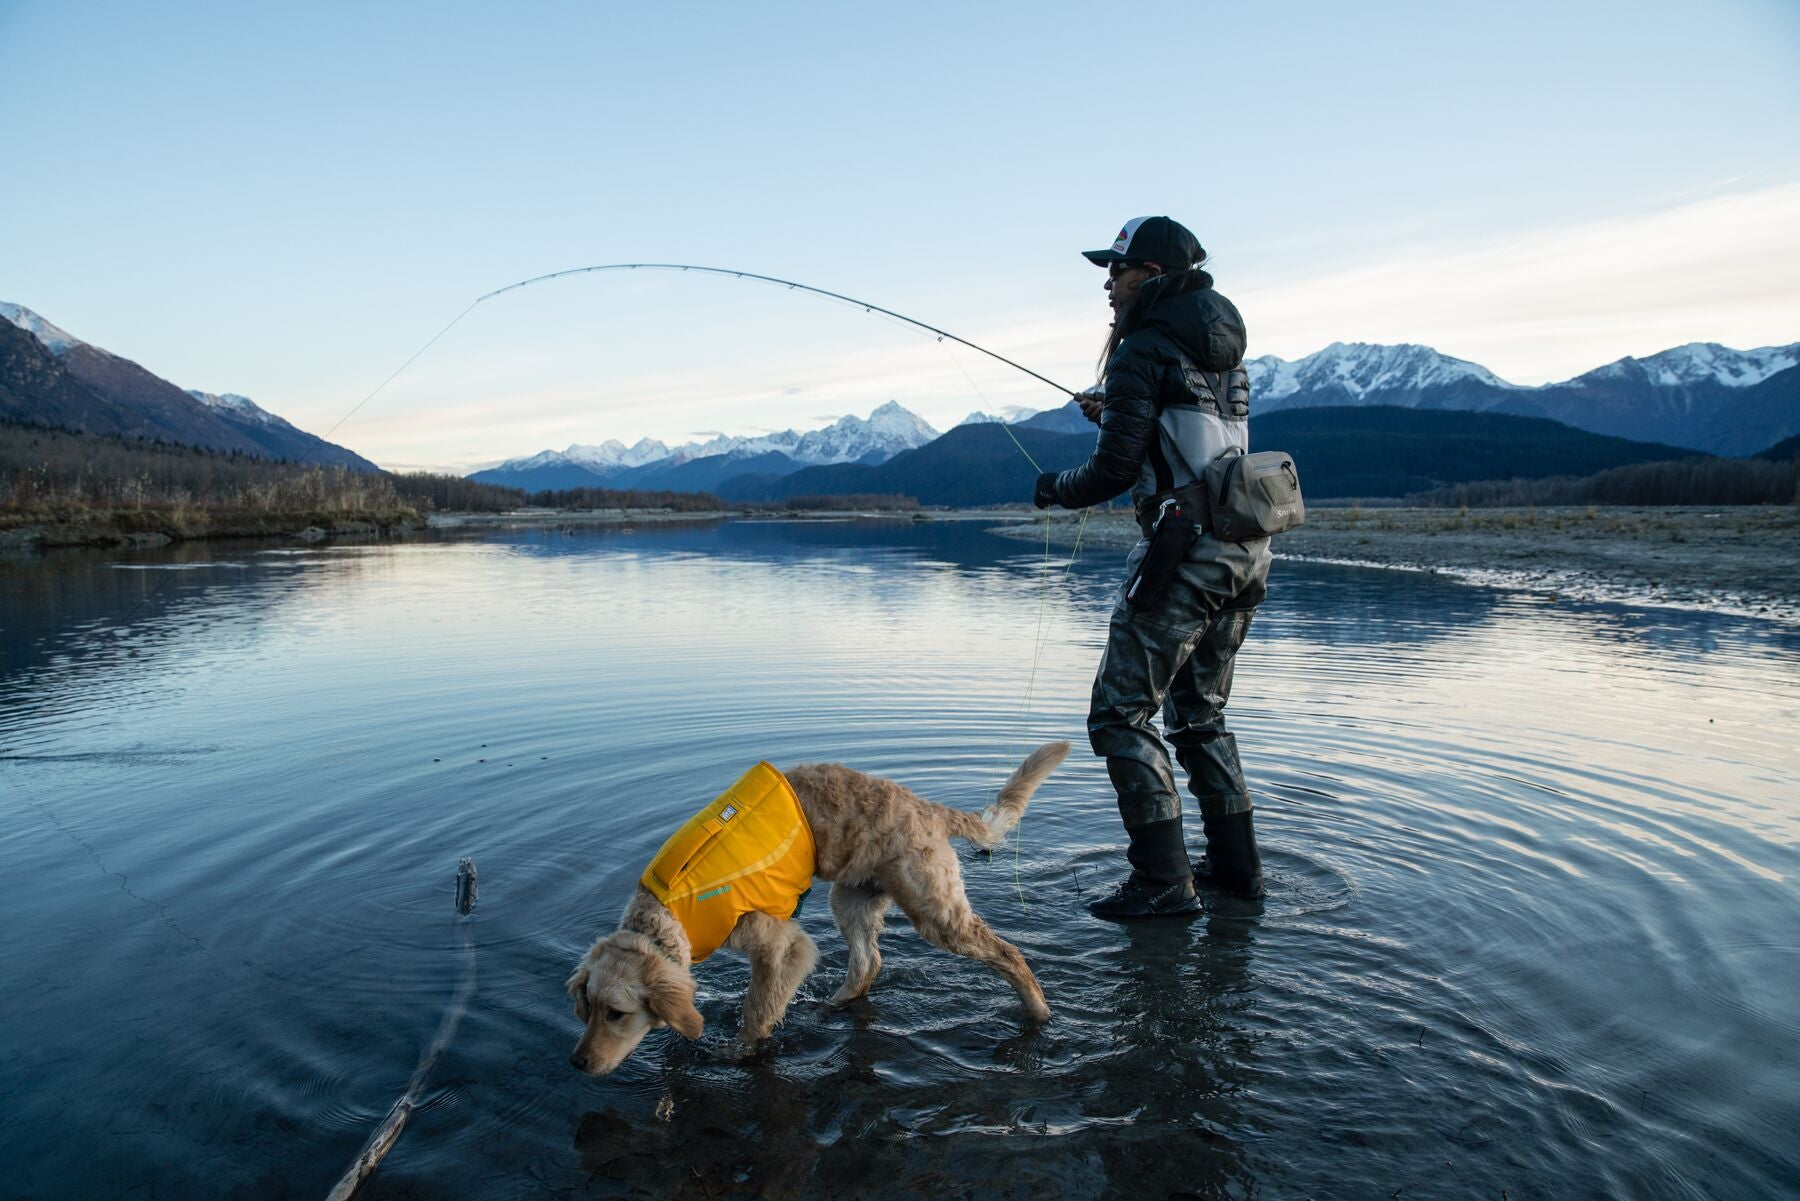 Woman fly fishing in river at base of Alaska mountains with puppy in float coat dog life jacket walking in water alongside her.